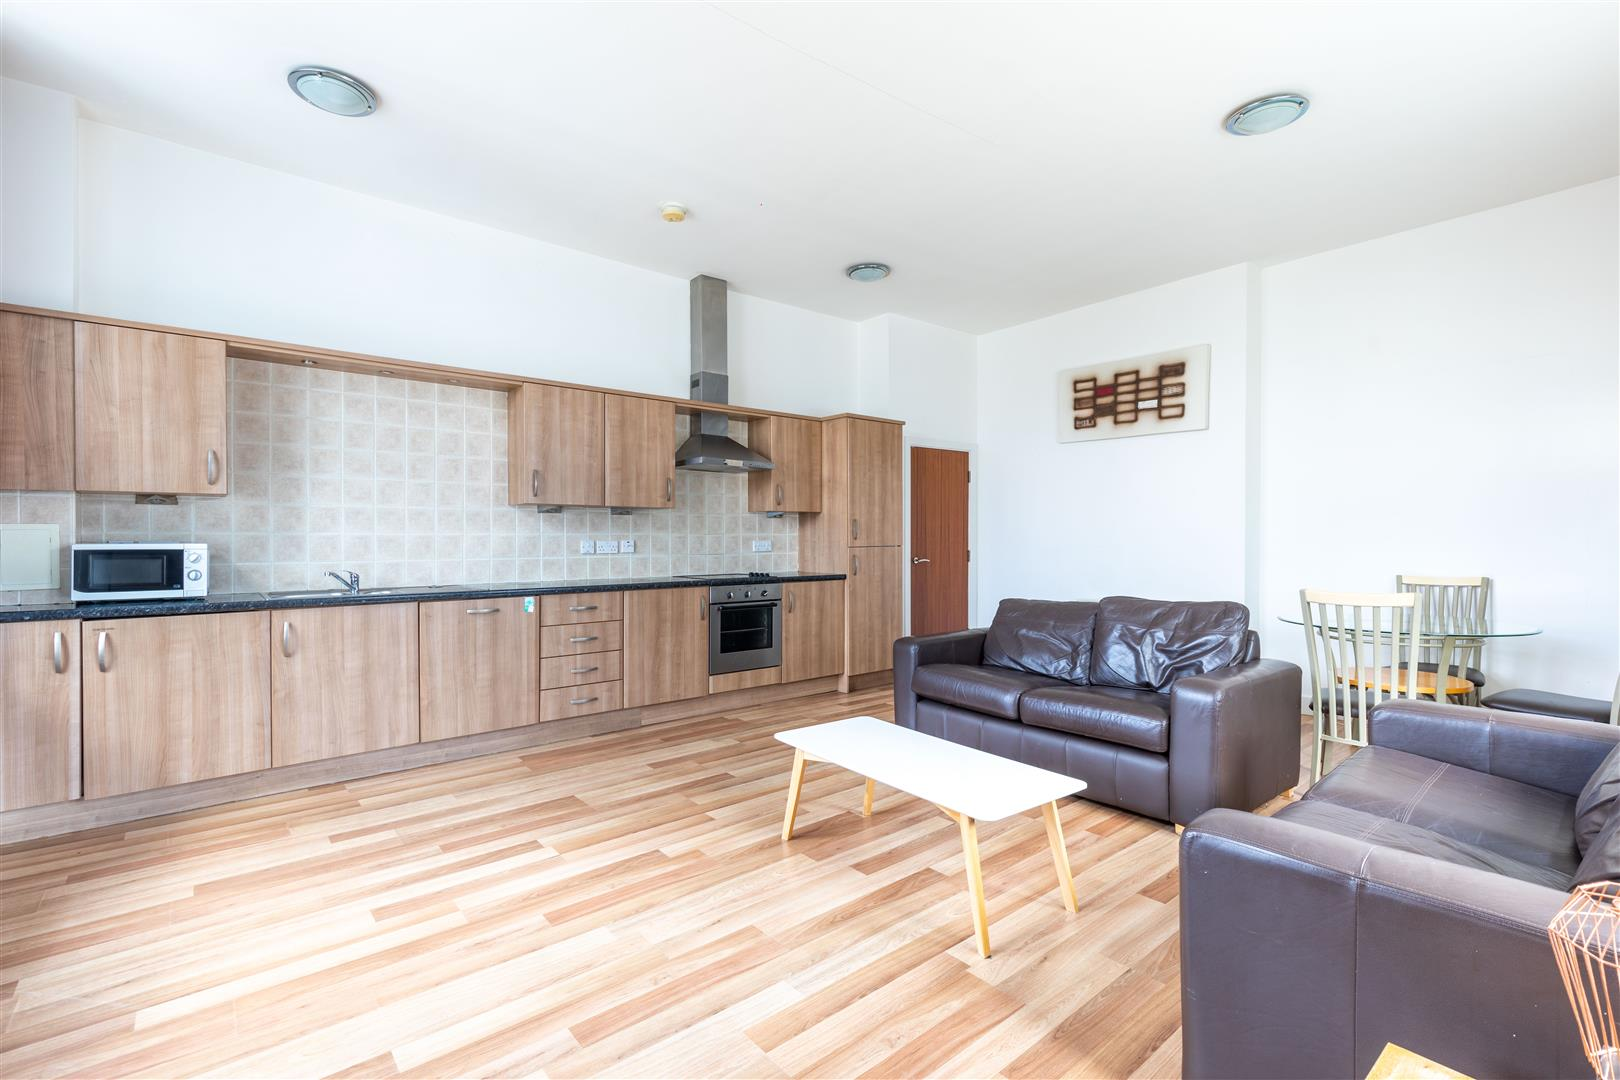 2 bed apartment to rent in Newcastle Upon Tyne, NE1 7DE 0